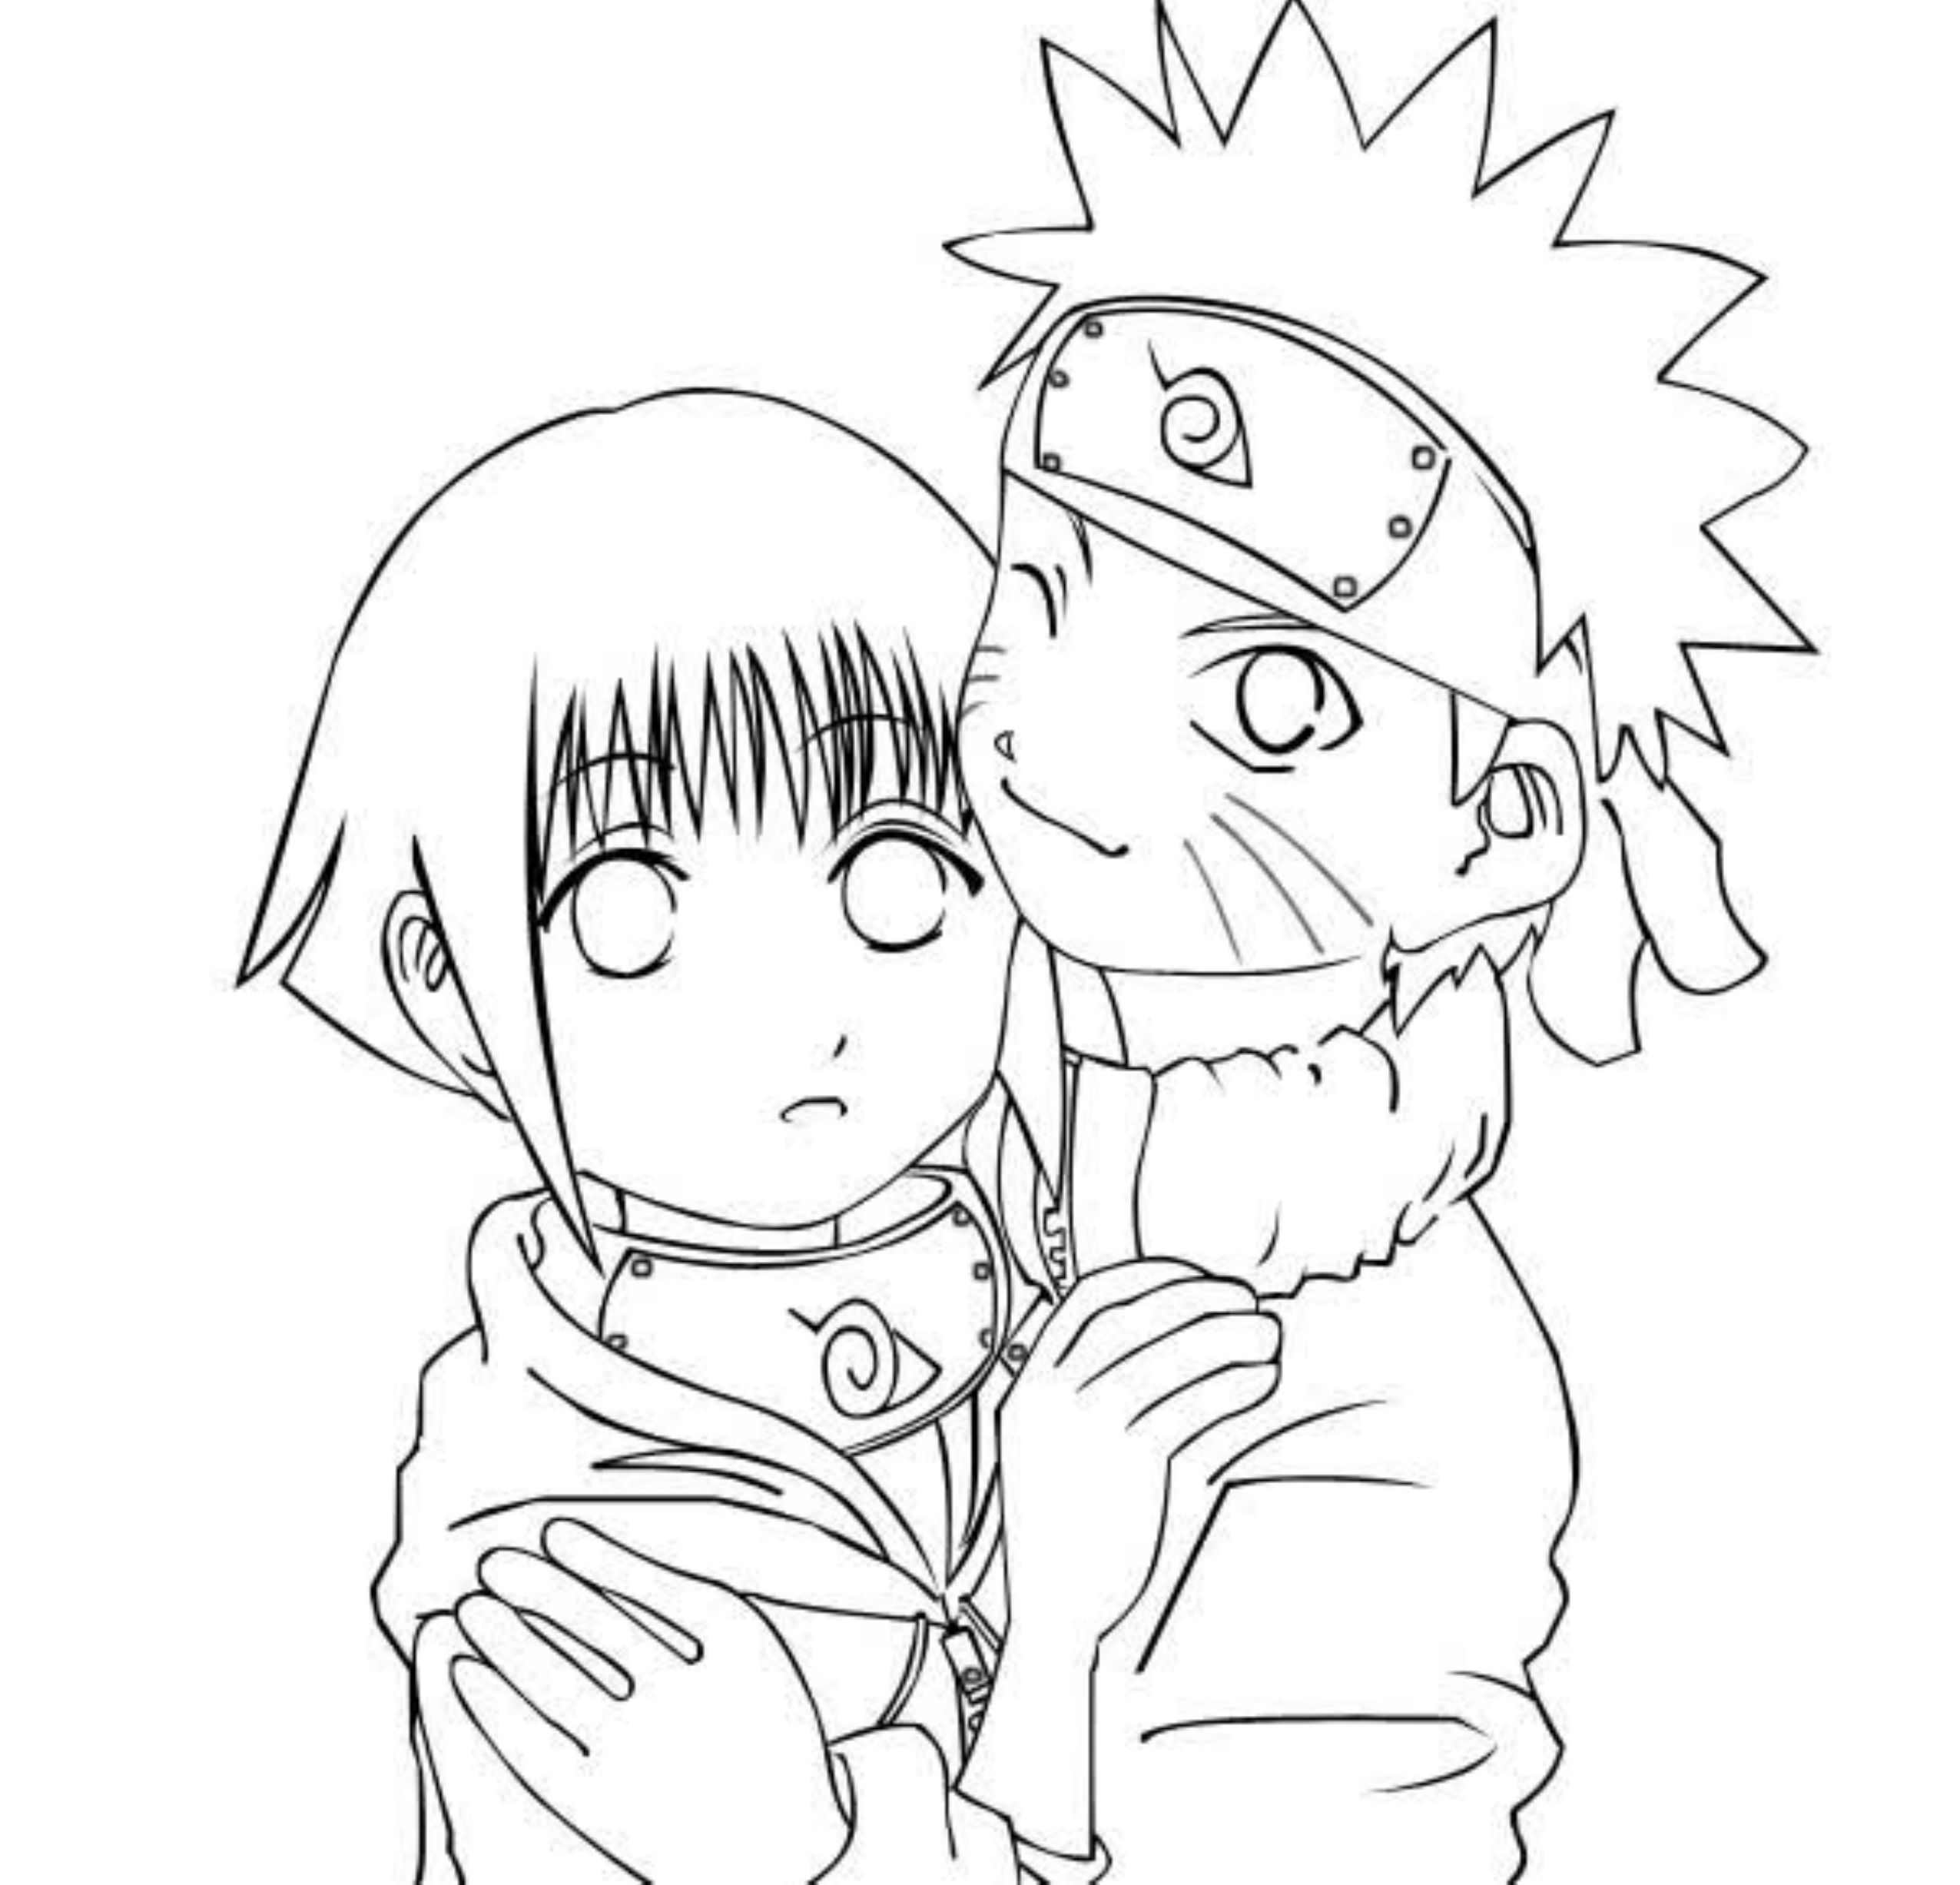 naruto shippuden coloring book printable naruto coloring pages to get your kids occupied shippuden naruto book coloring